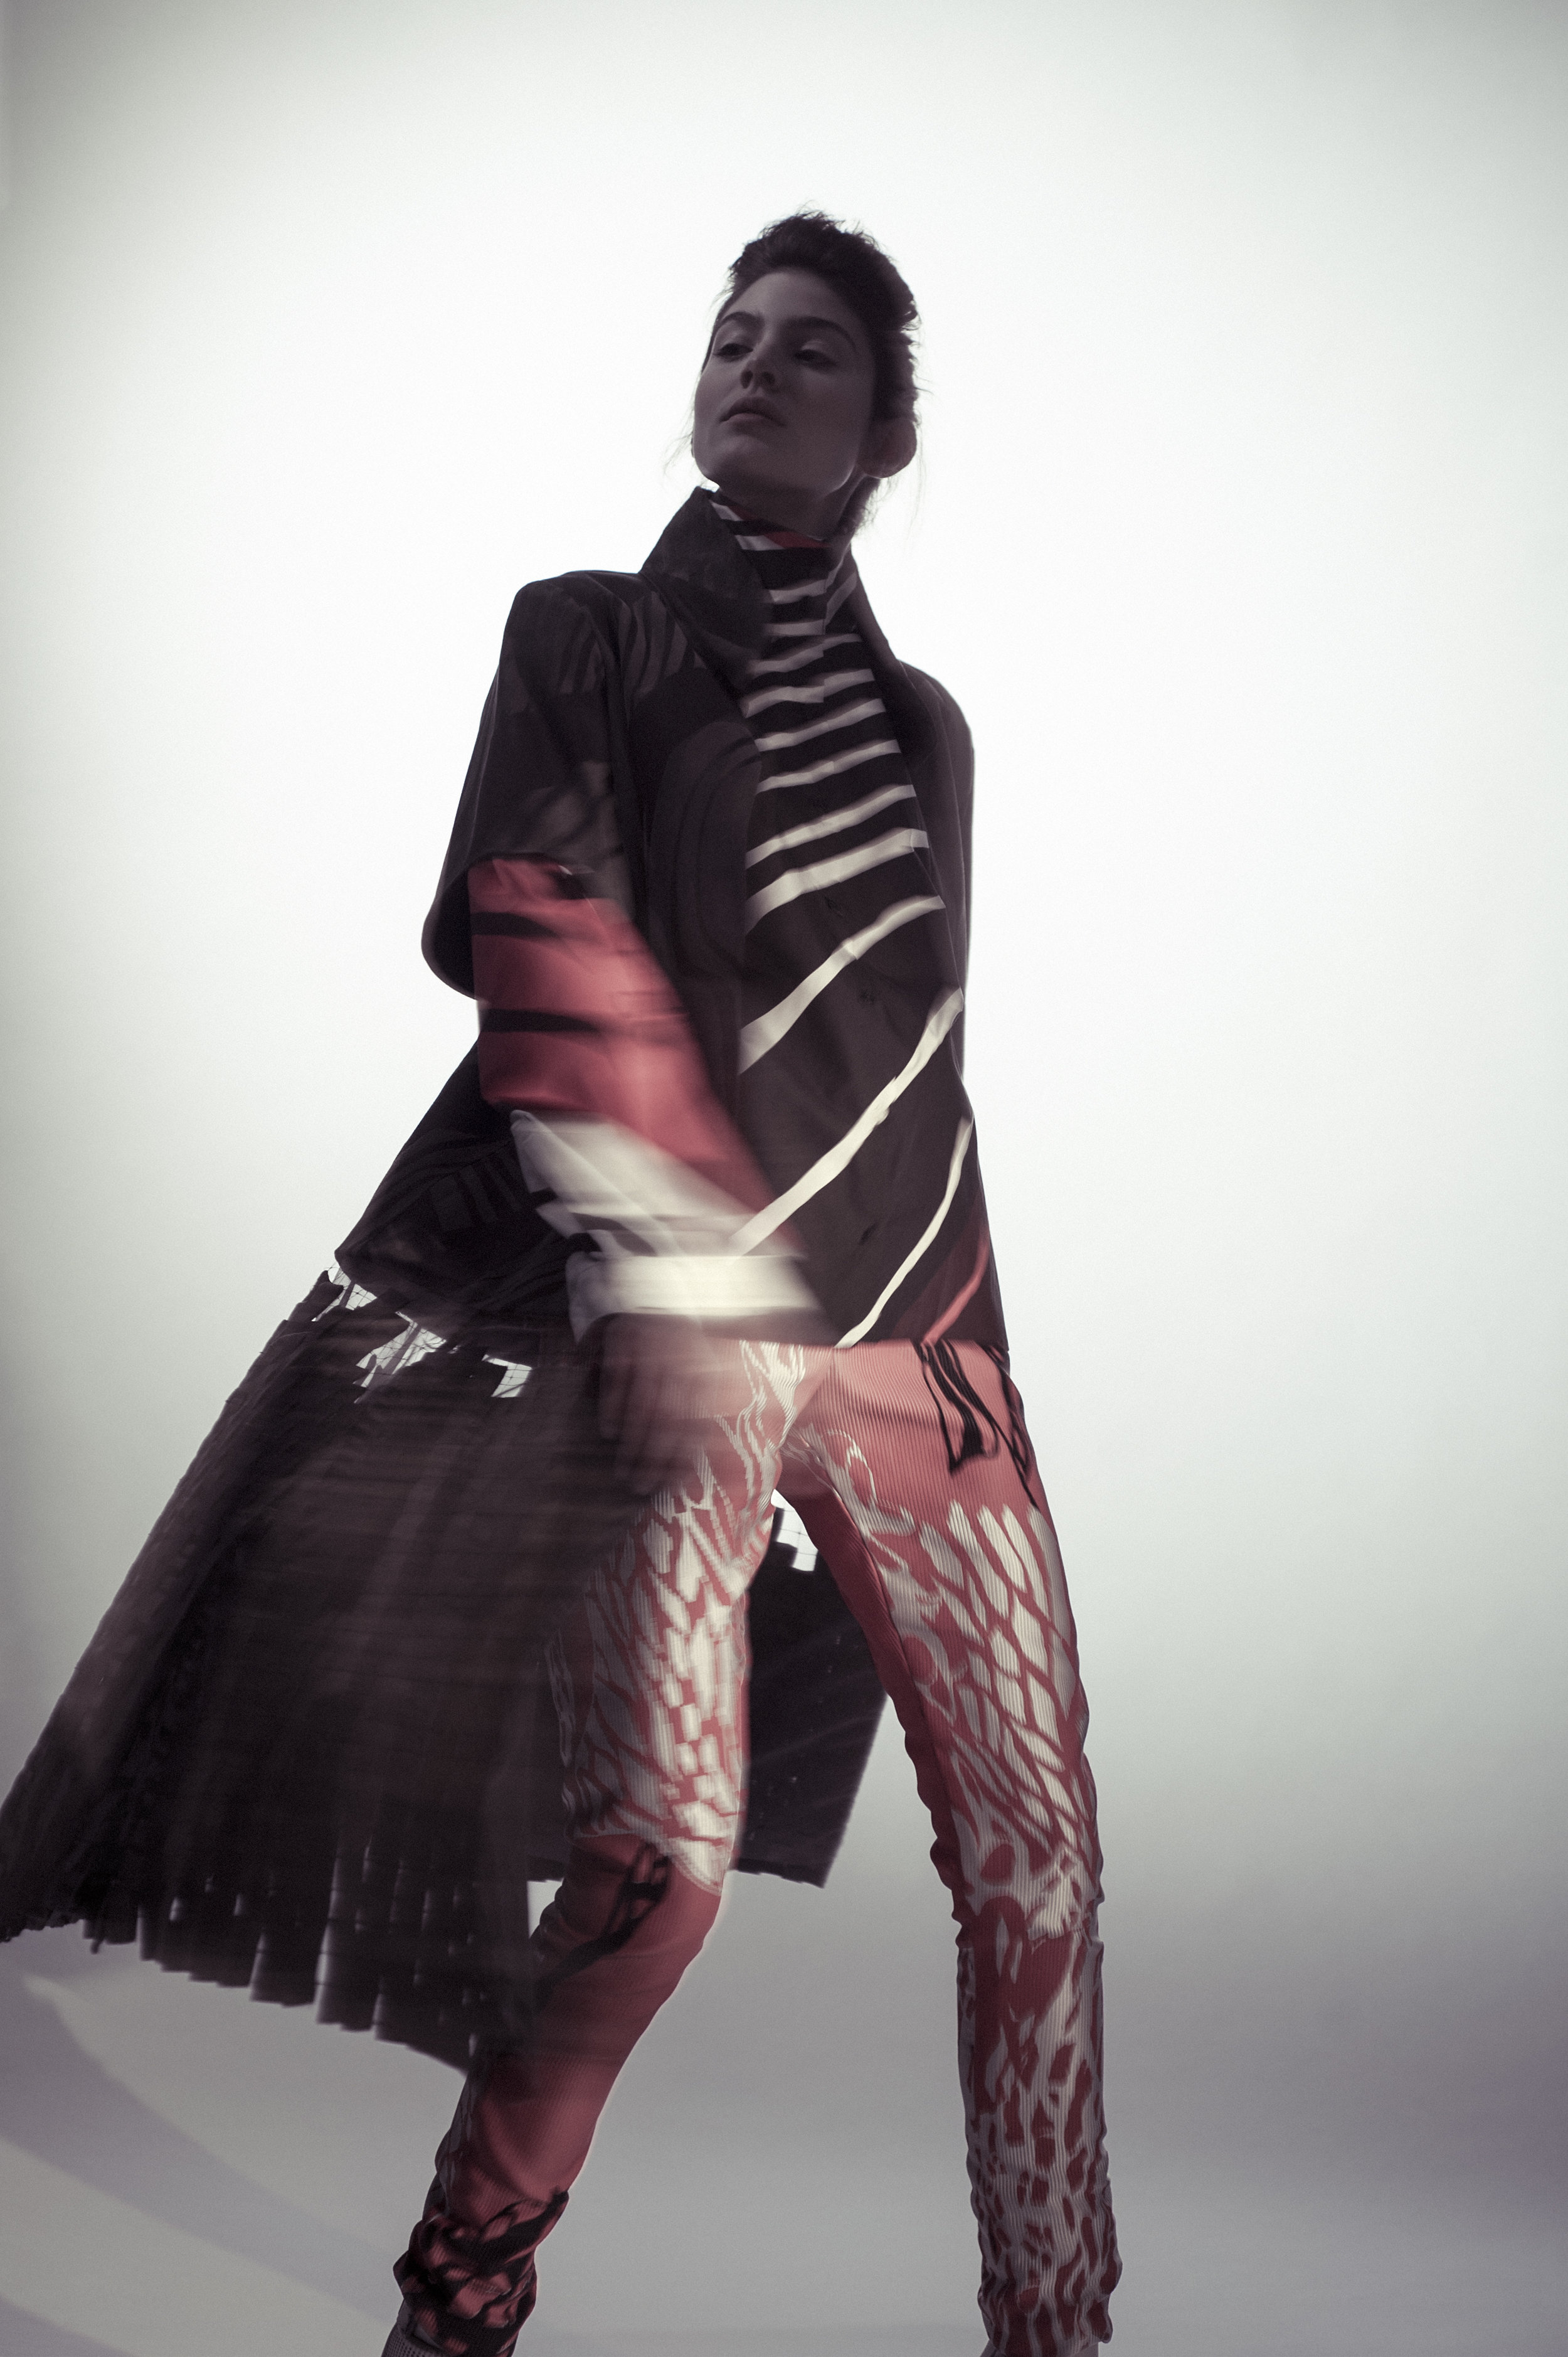 Printed and Woven Coat, Shirt, and Pants by Ernest Huang, MFA Fashion Design and Hong Ni, MFA Textile Design. Socks, stylist's own. Shoes, Aldo.